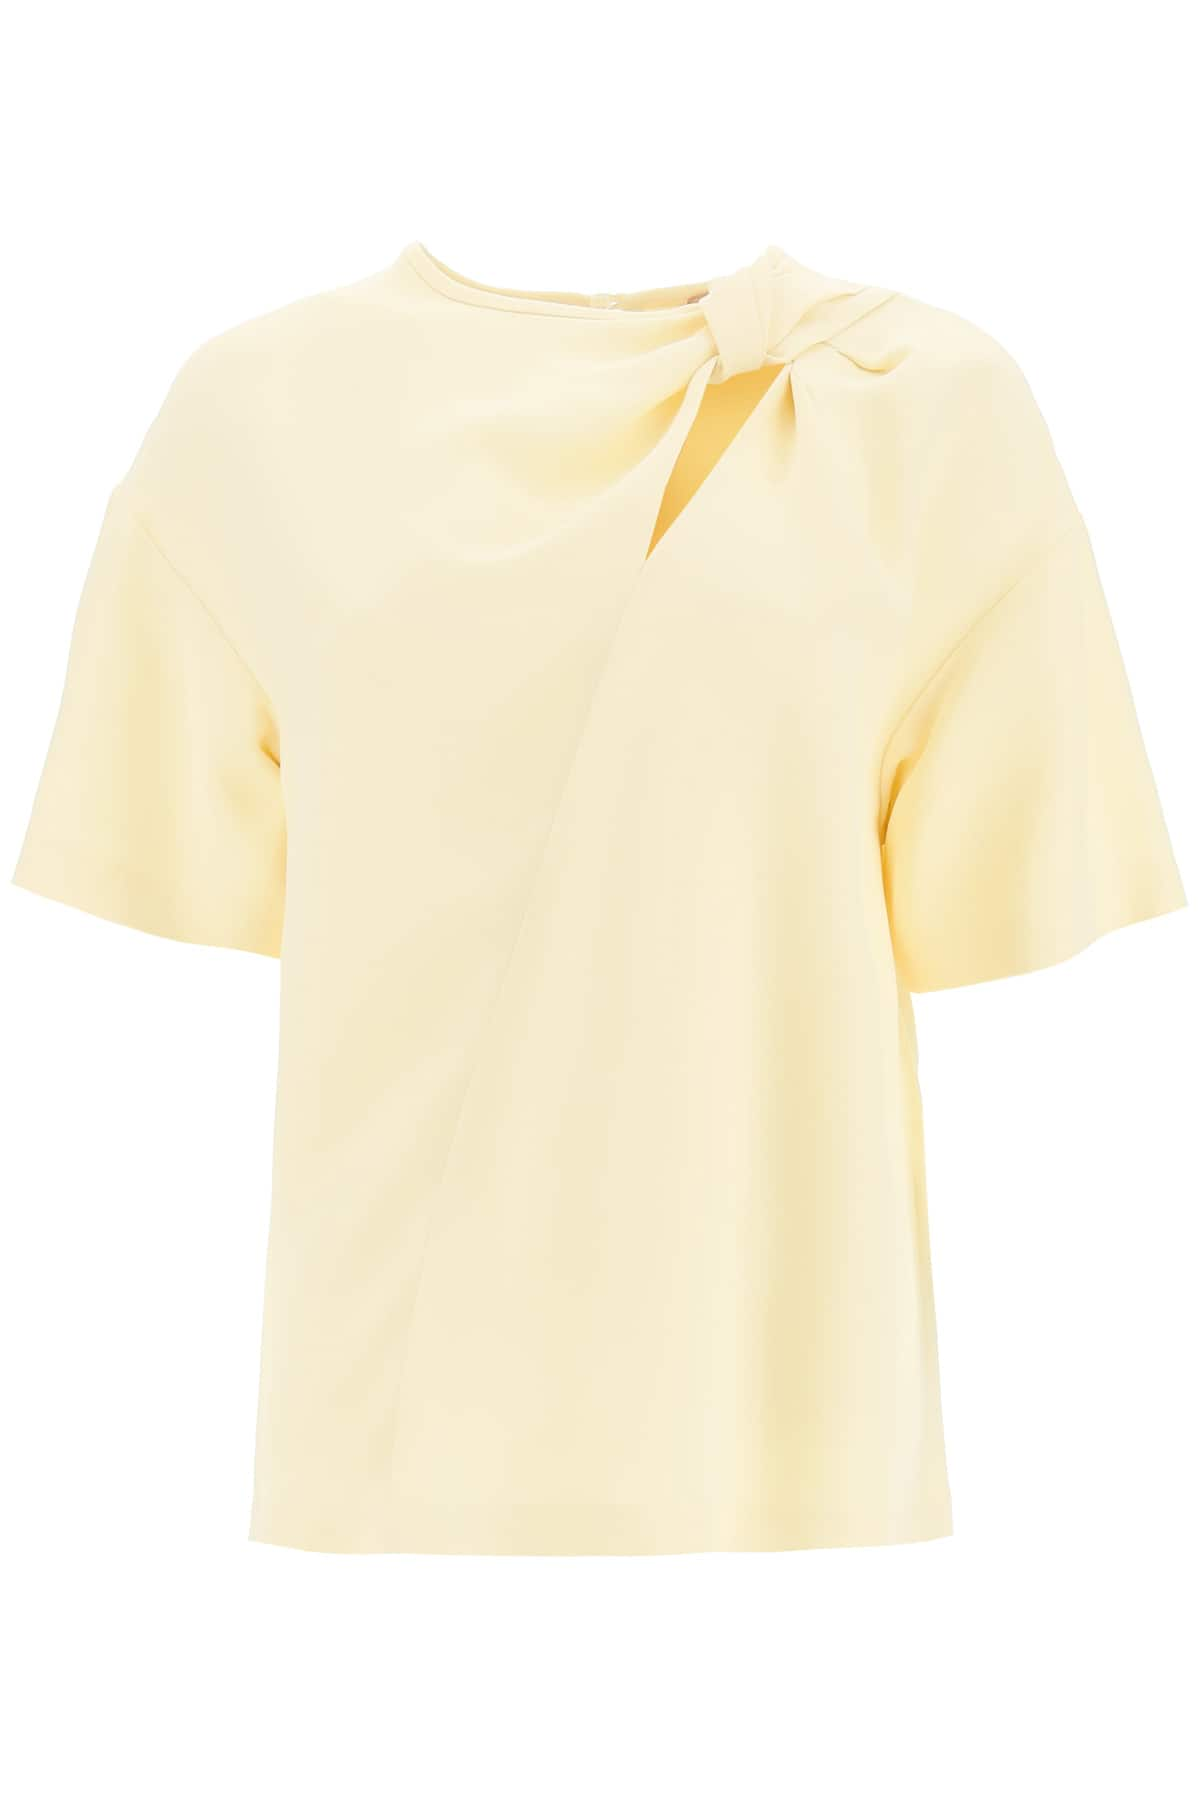 N.21 BLOUSE WITH KNOT 44 Beige